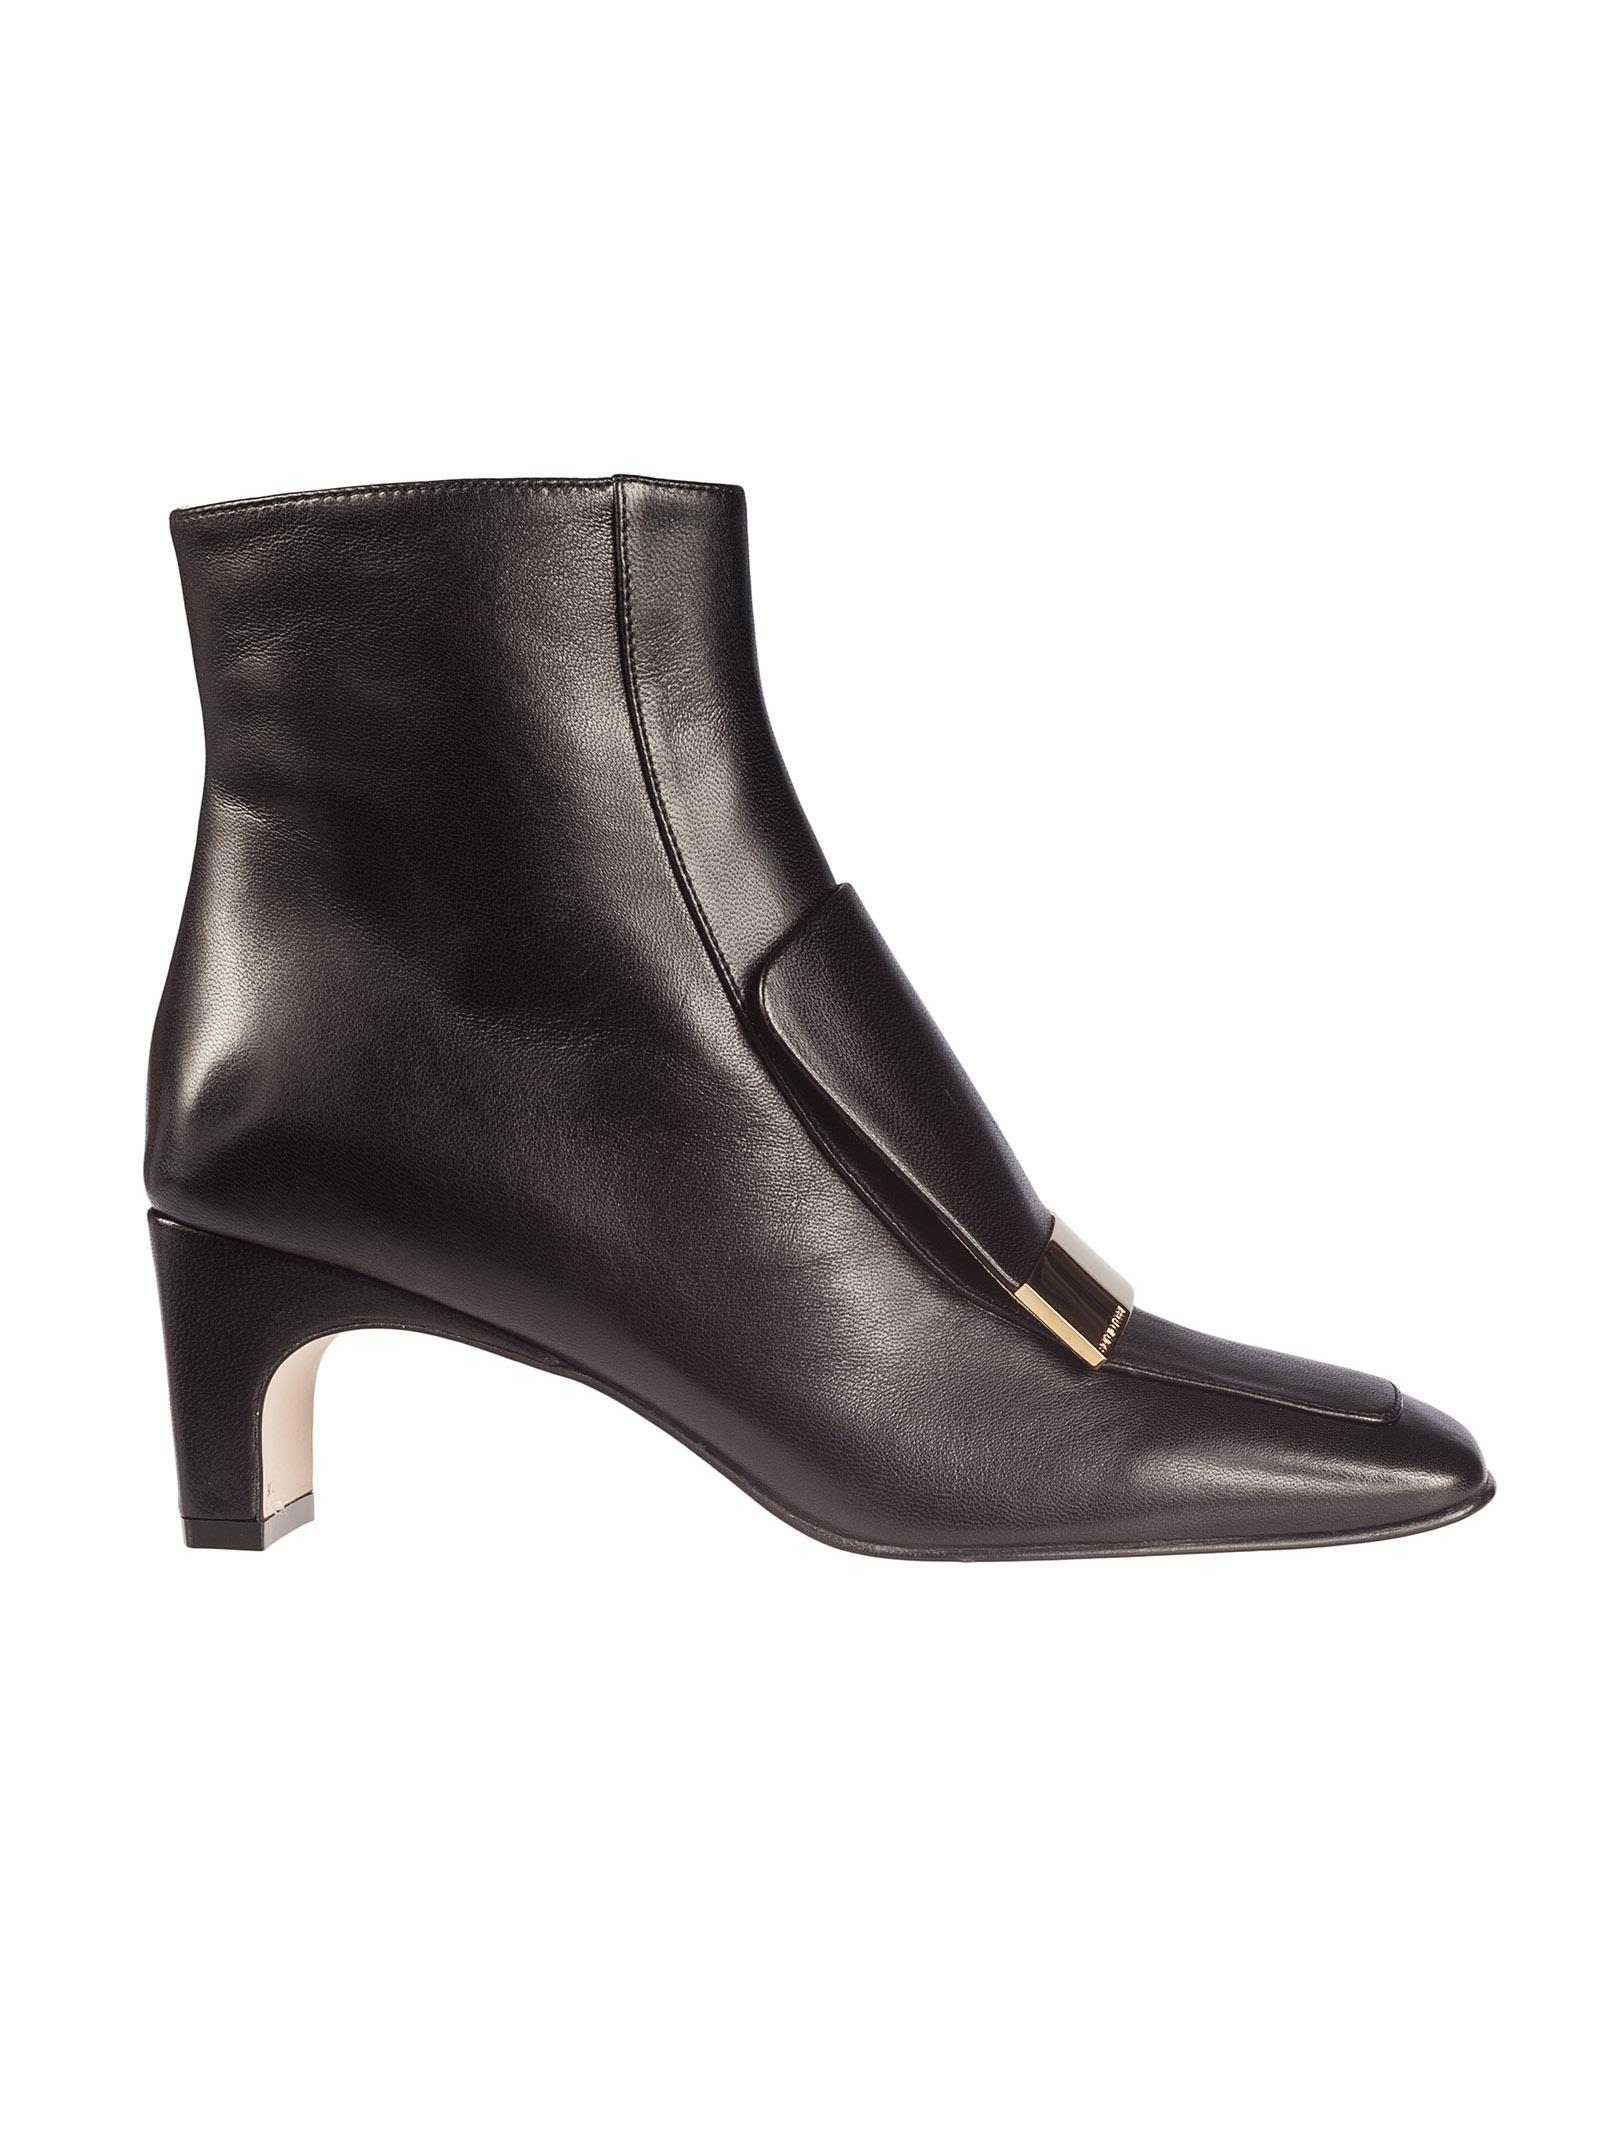 Sergio Rossi Plated Boots